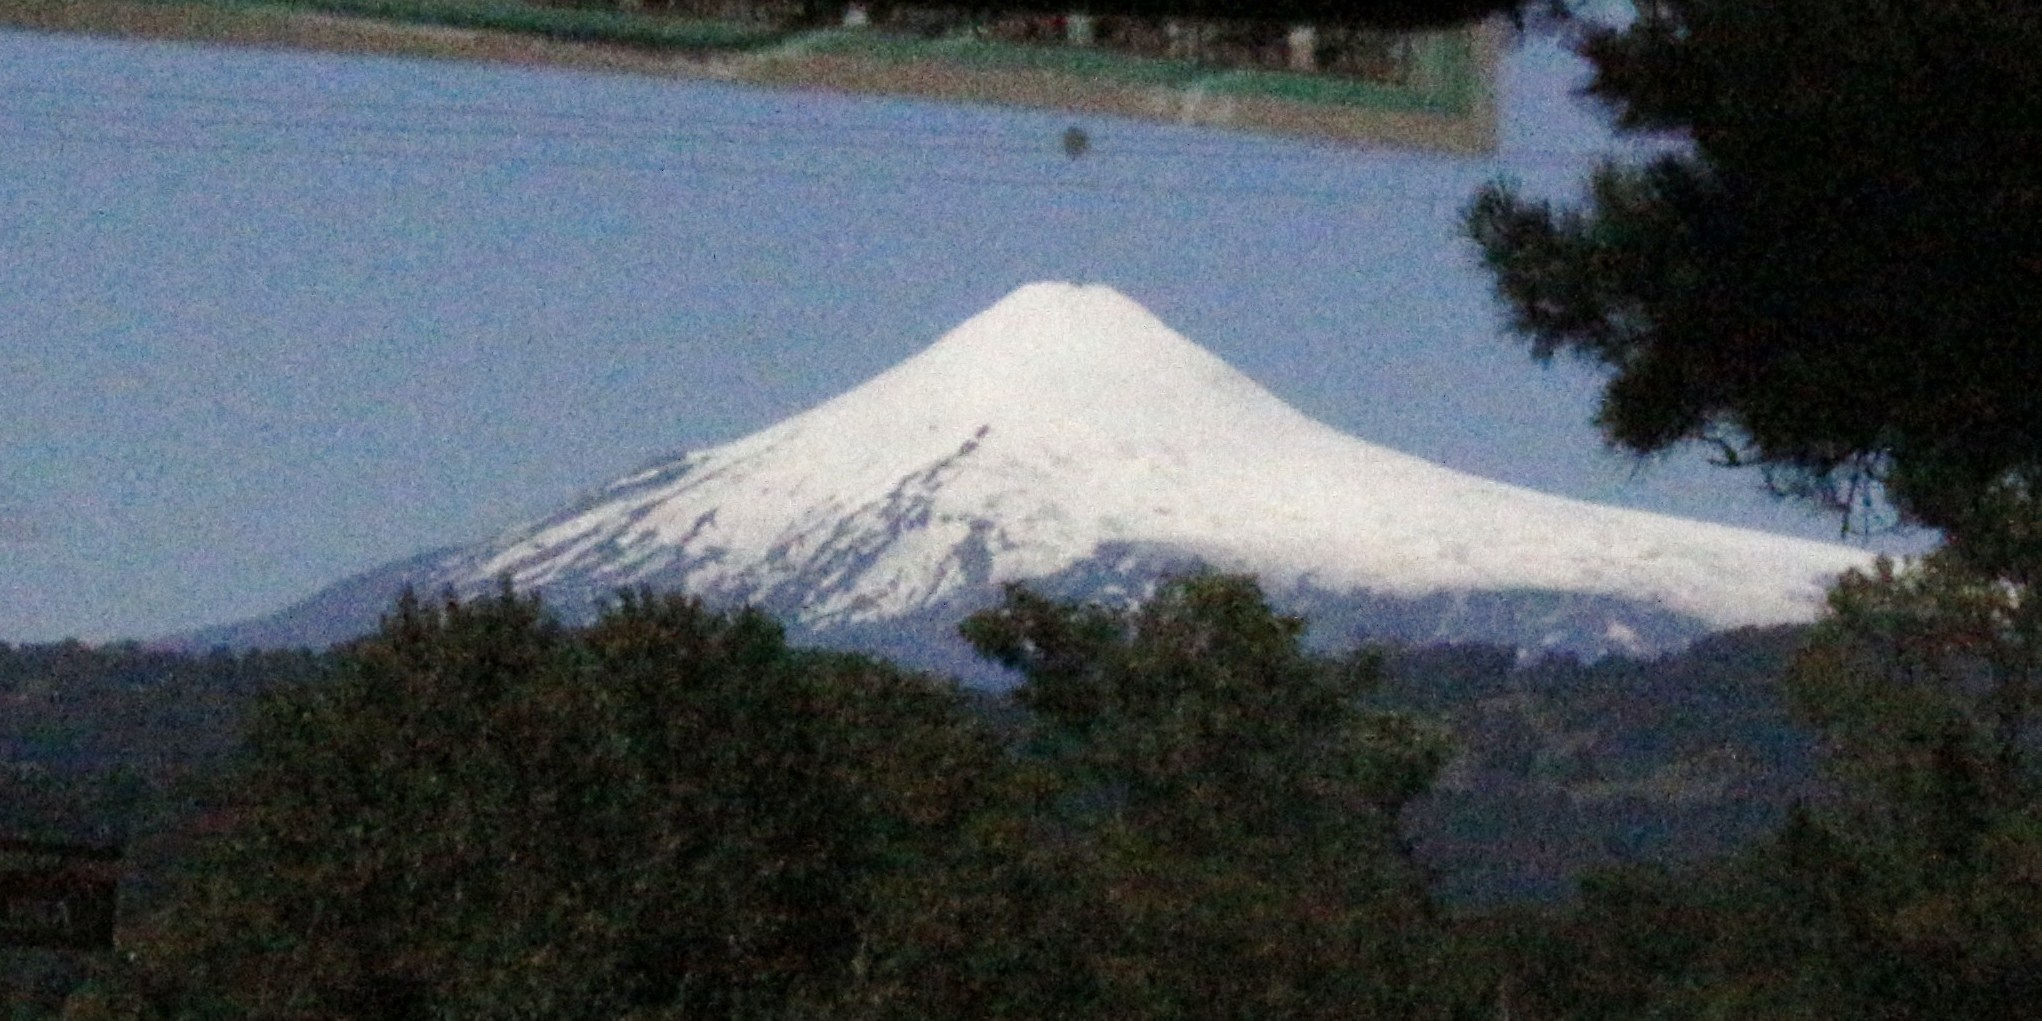 Villarica, through the window glass